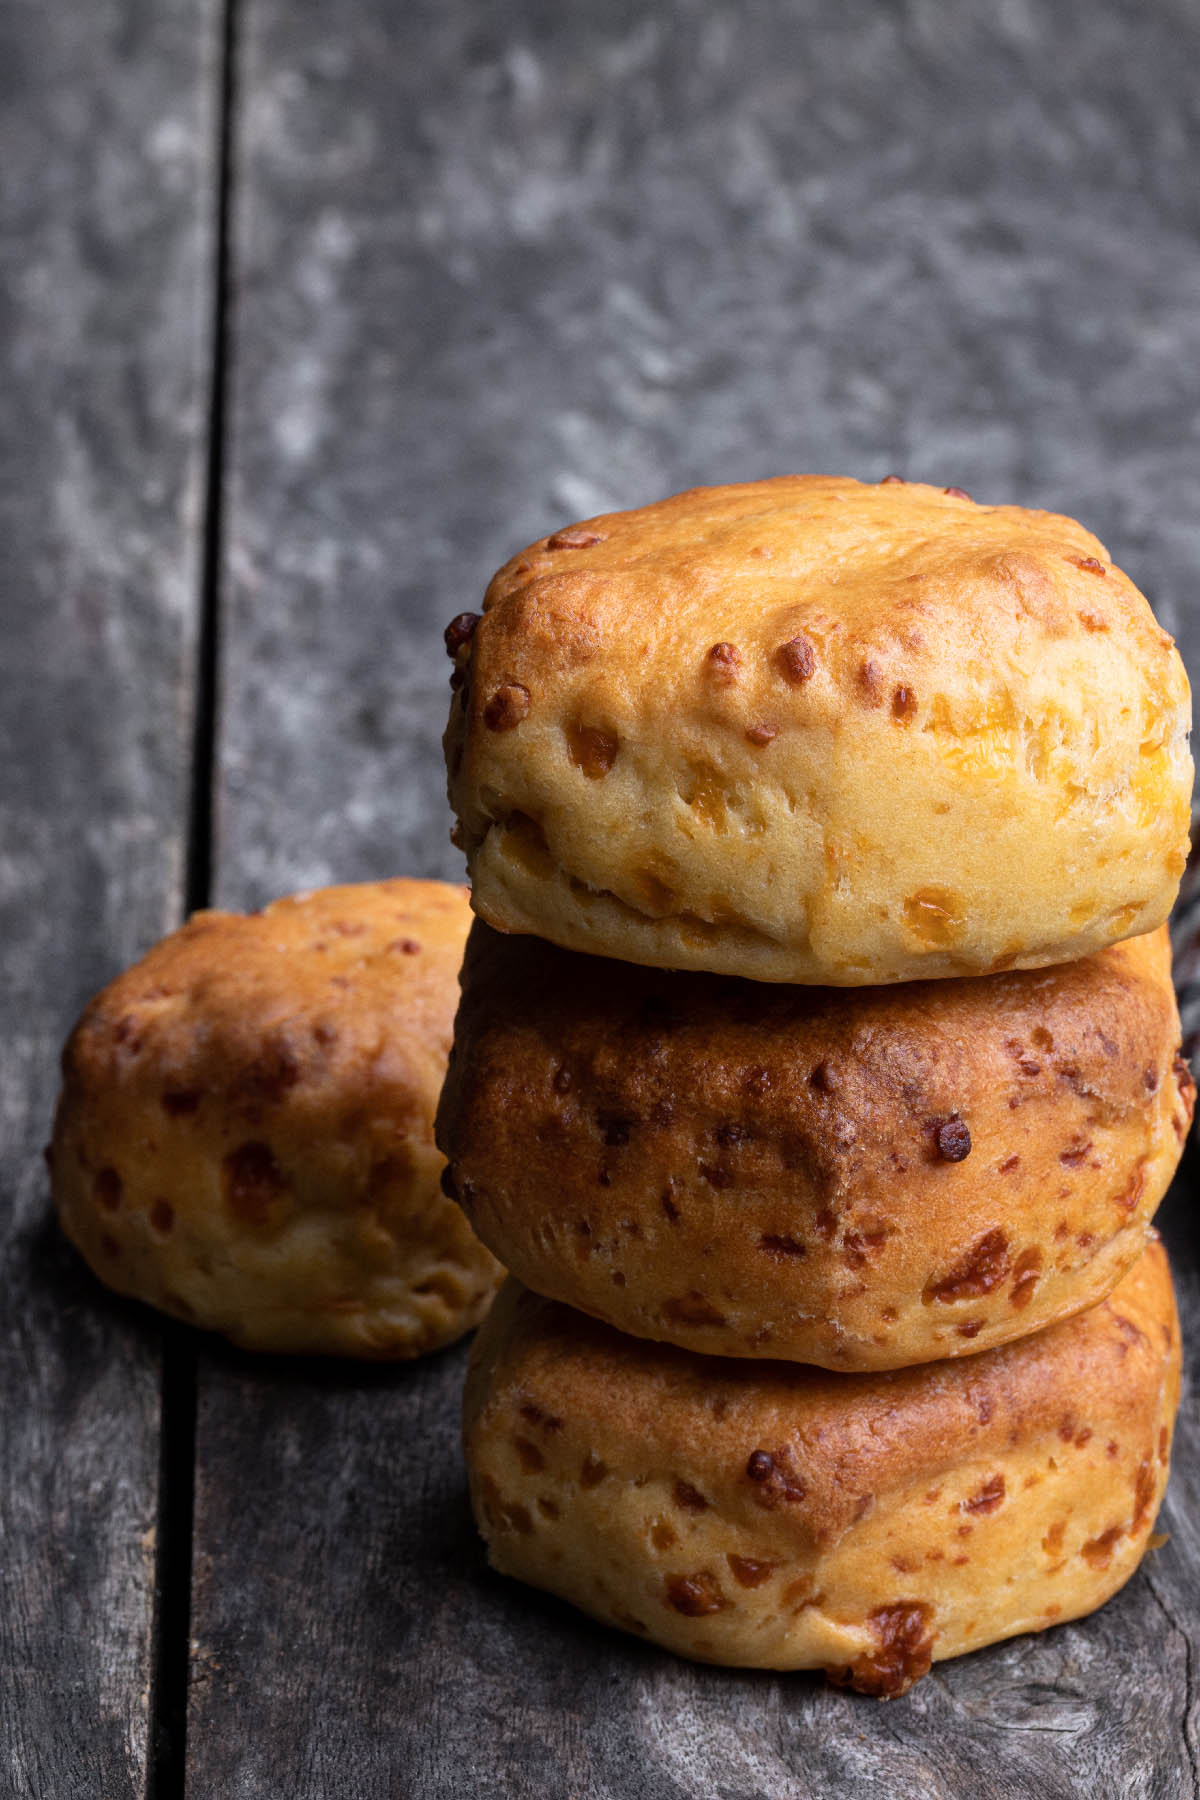 Photo of completed recipe for Cheese and Mustard Scones